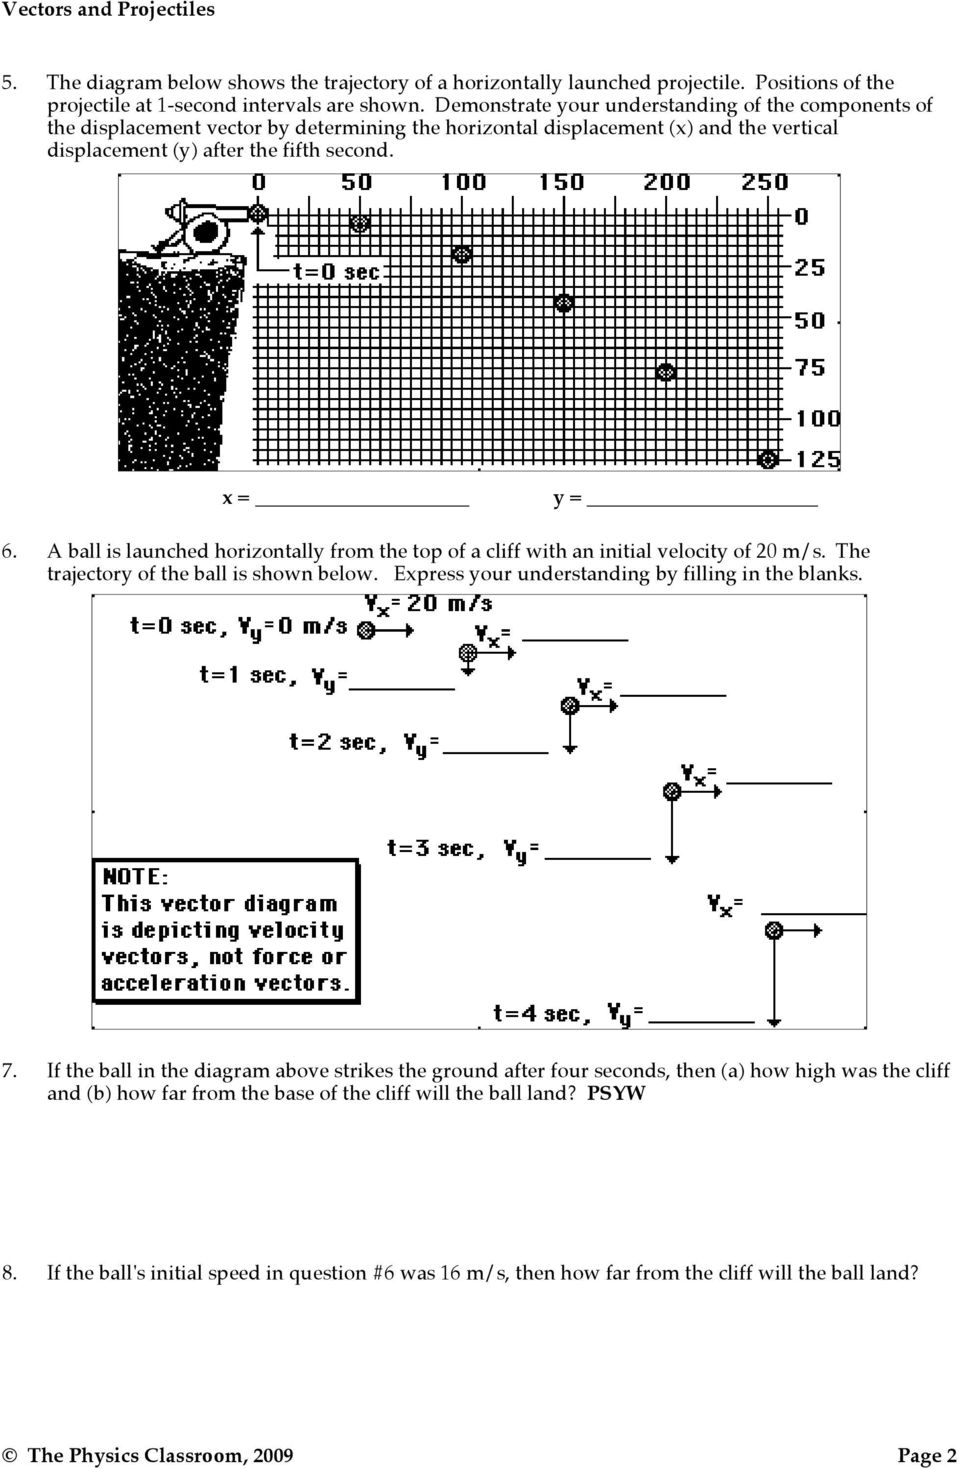 Projectile Motion Vectors And Projectiles Pdf